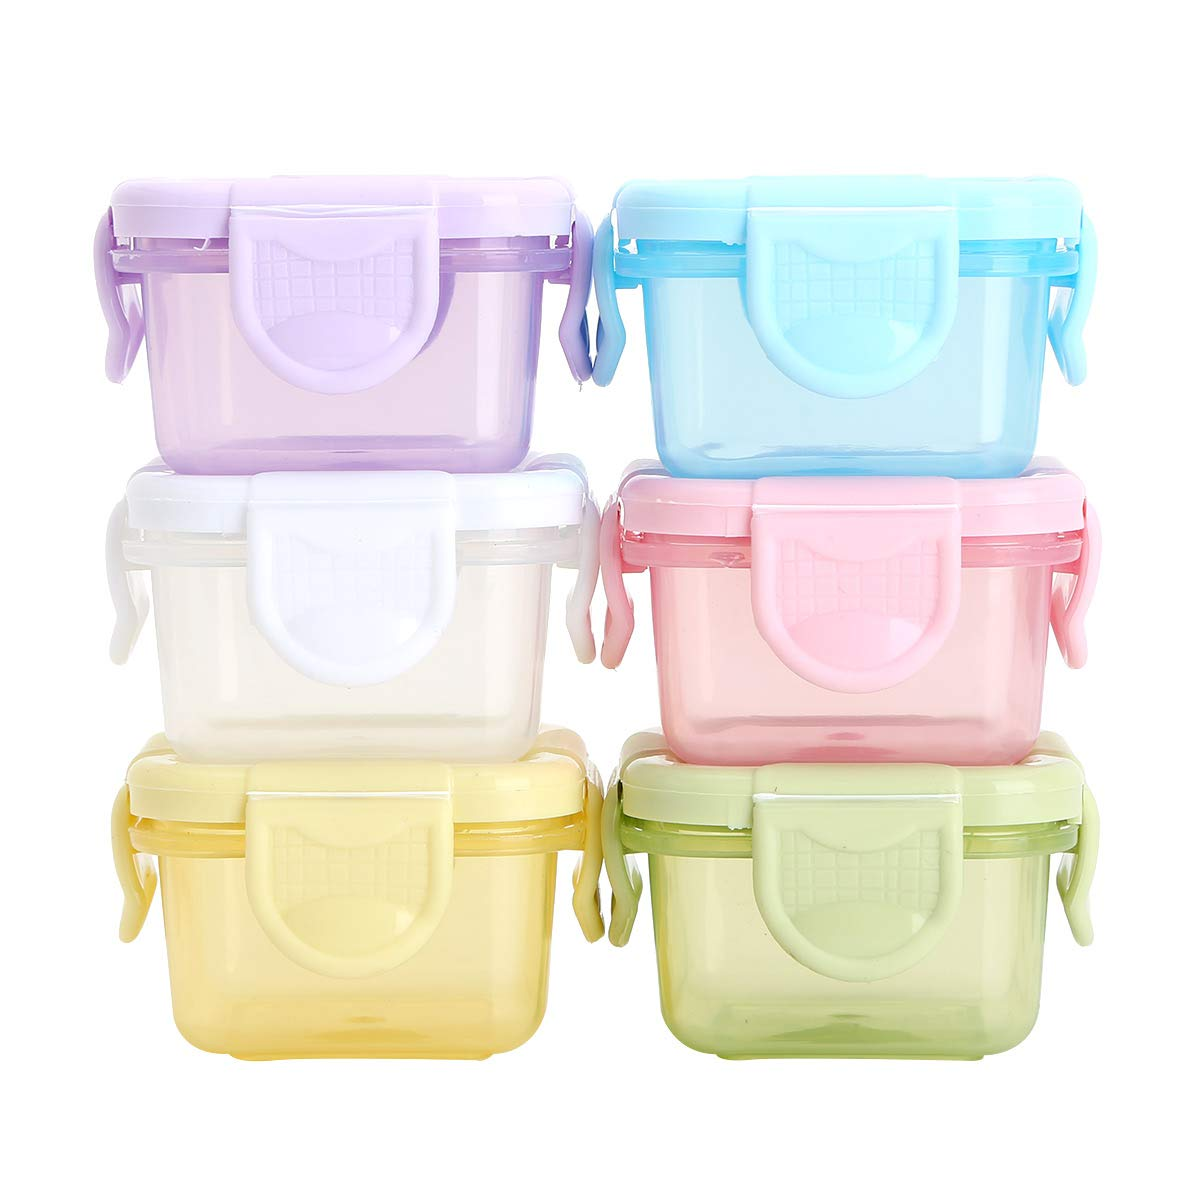 iiniim Baby Food Containers, 6PCS BPA-Free Baby Food Freezer Storage Containers Multicolor One Size